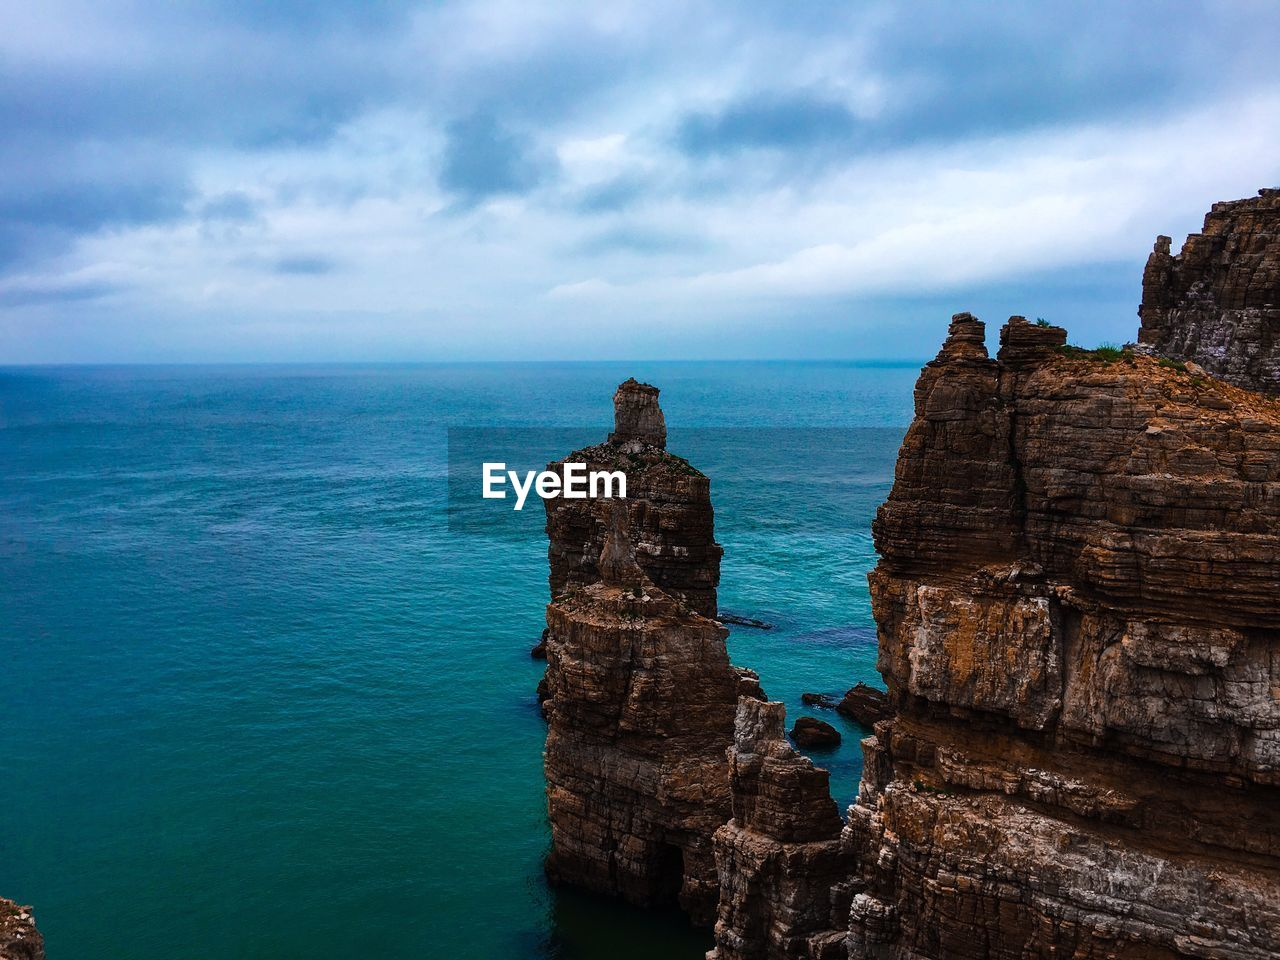 sea, sky, water, cloud - sky, horizon over water, scenics - nature, horizon, beauty in nature, tranquility, tranquil scene, nature, rock, no people, land, solid, rock - object, non-urban scene, rock formation, day, outdoors, stack rock, eroded